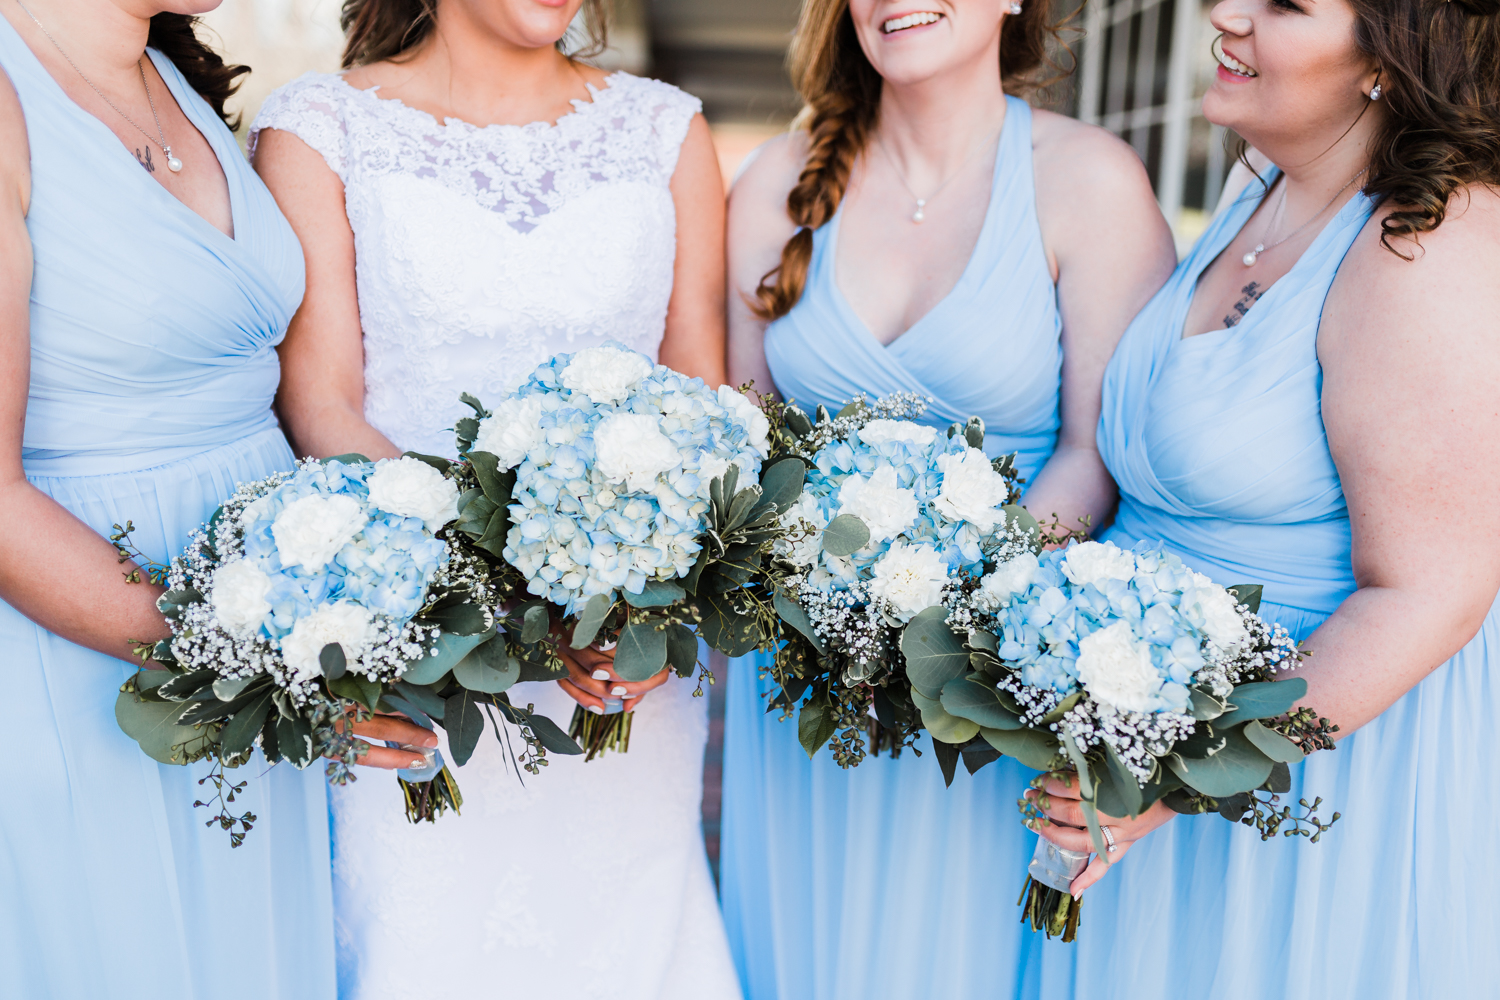 Wedding day details of bride and bridesmaids bouquets for icy blue Maryland wedding